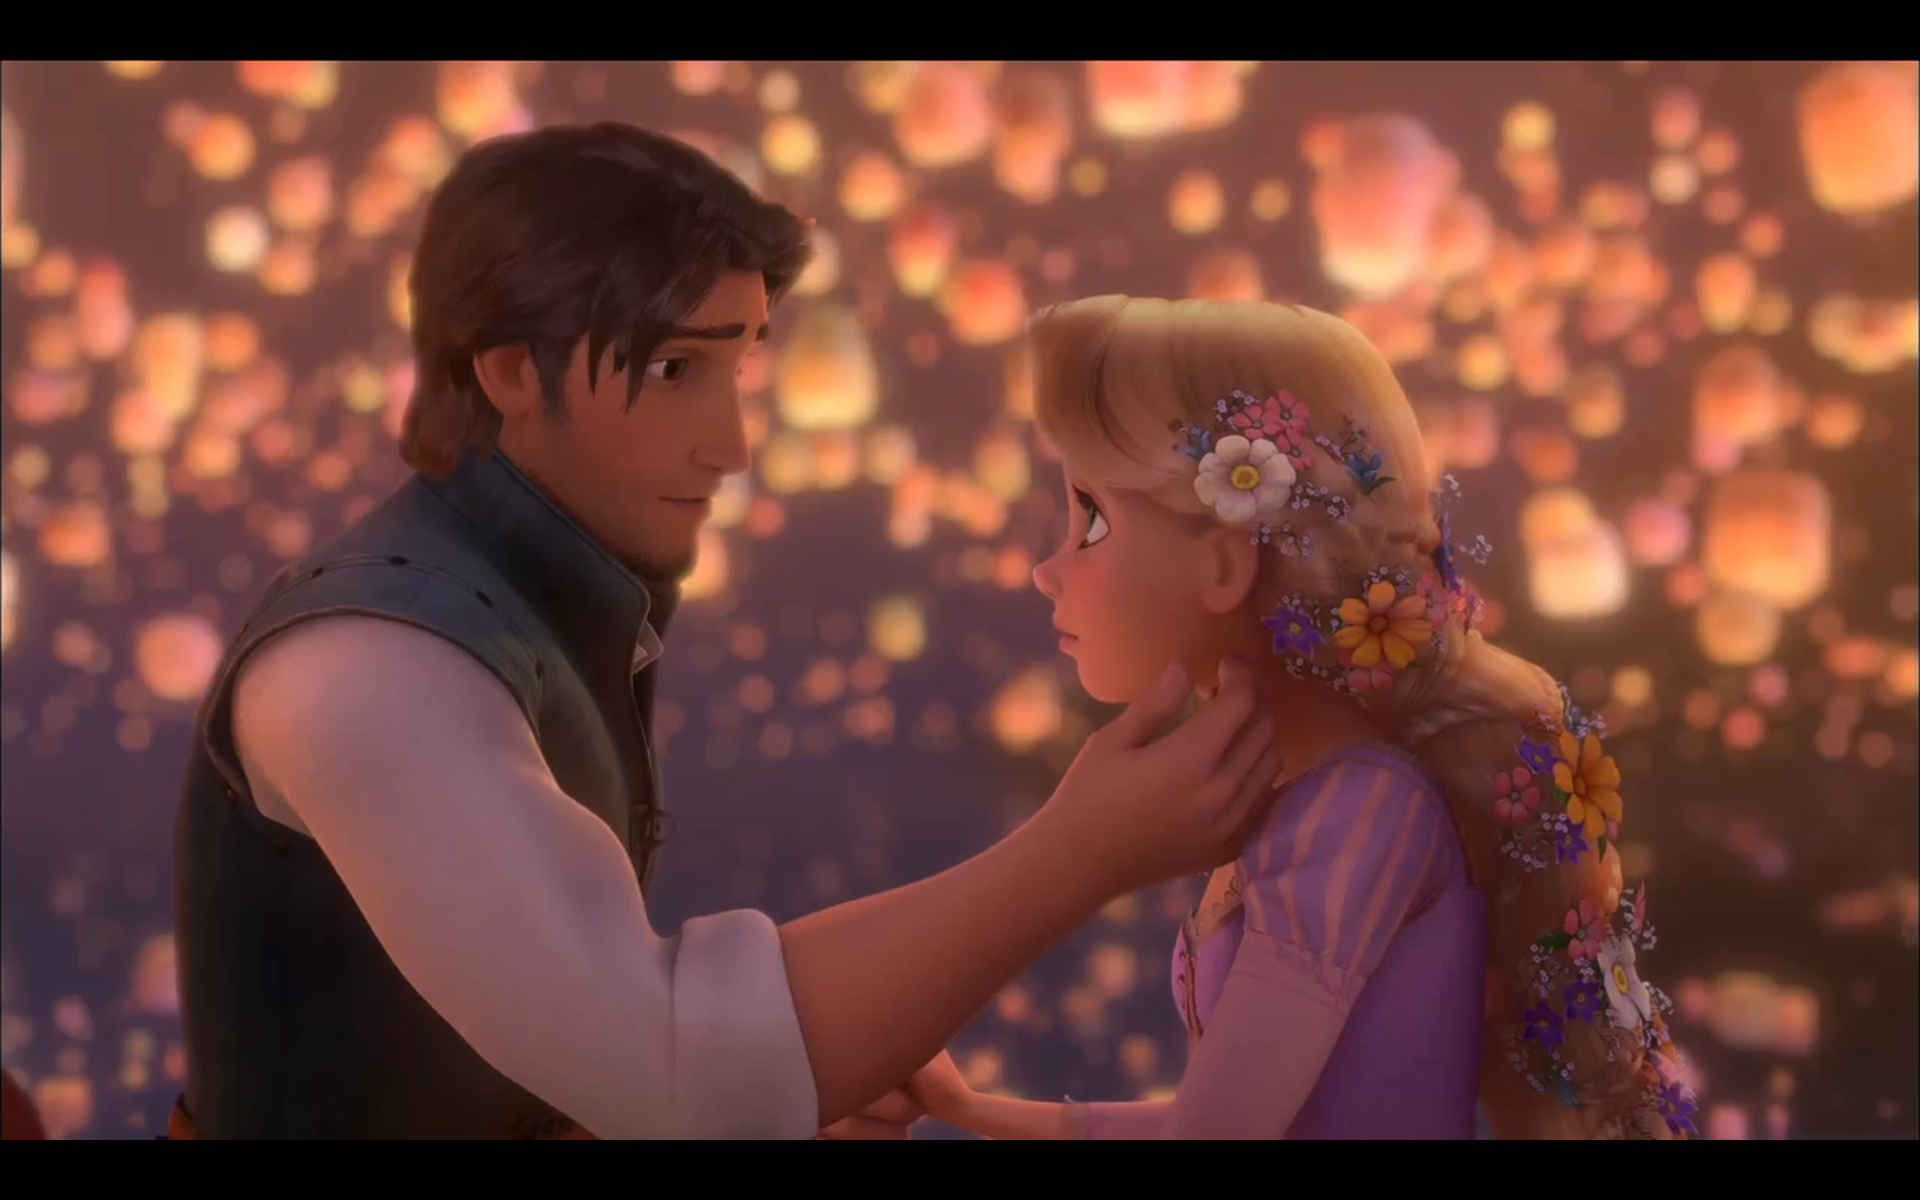 Tangled Hd Wallpapers Of Romance Moment For Desktop Pc 9 Ideas On Pinterest Tangled Wallpaper Animated Movies Tangled